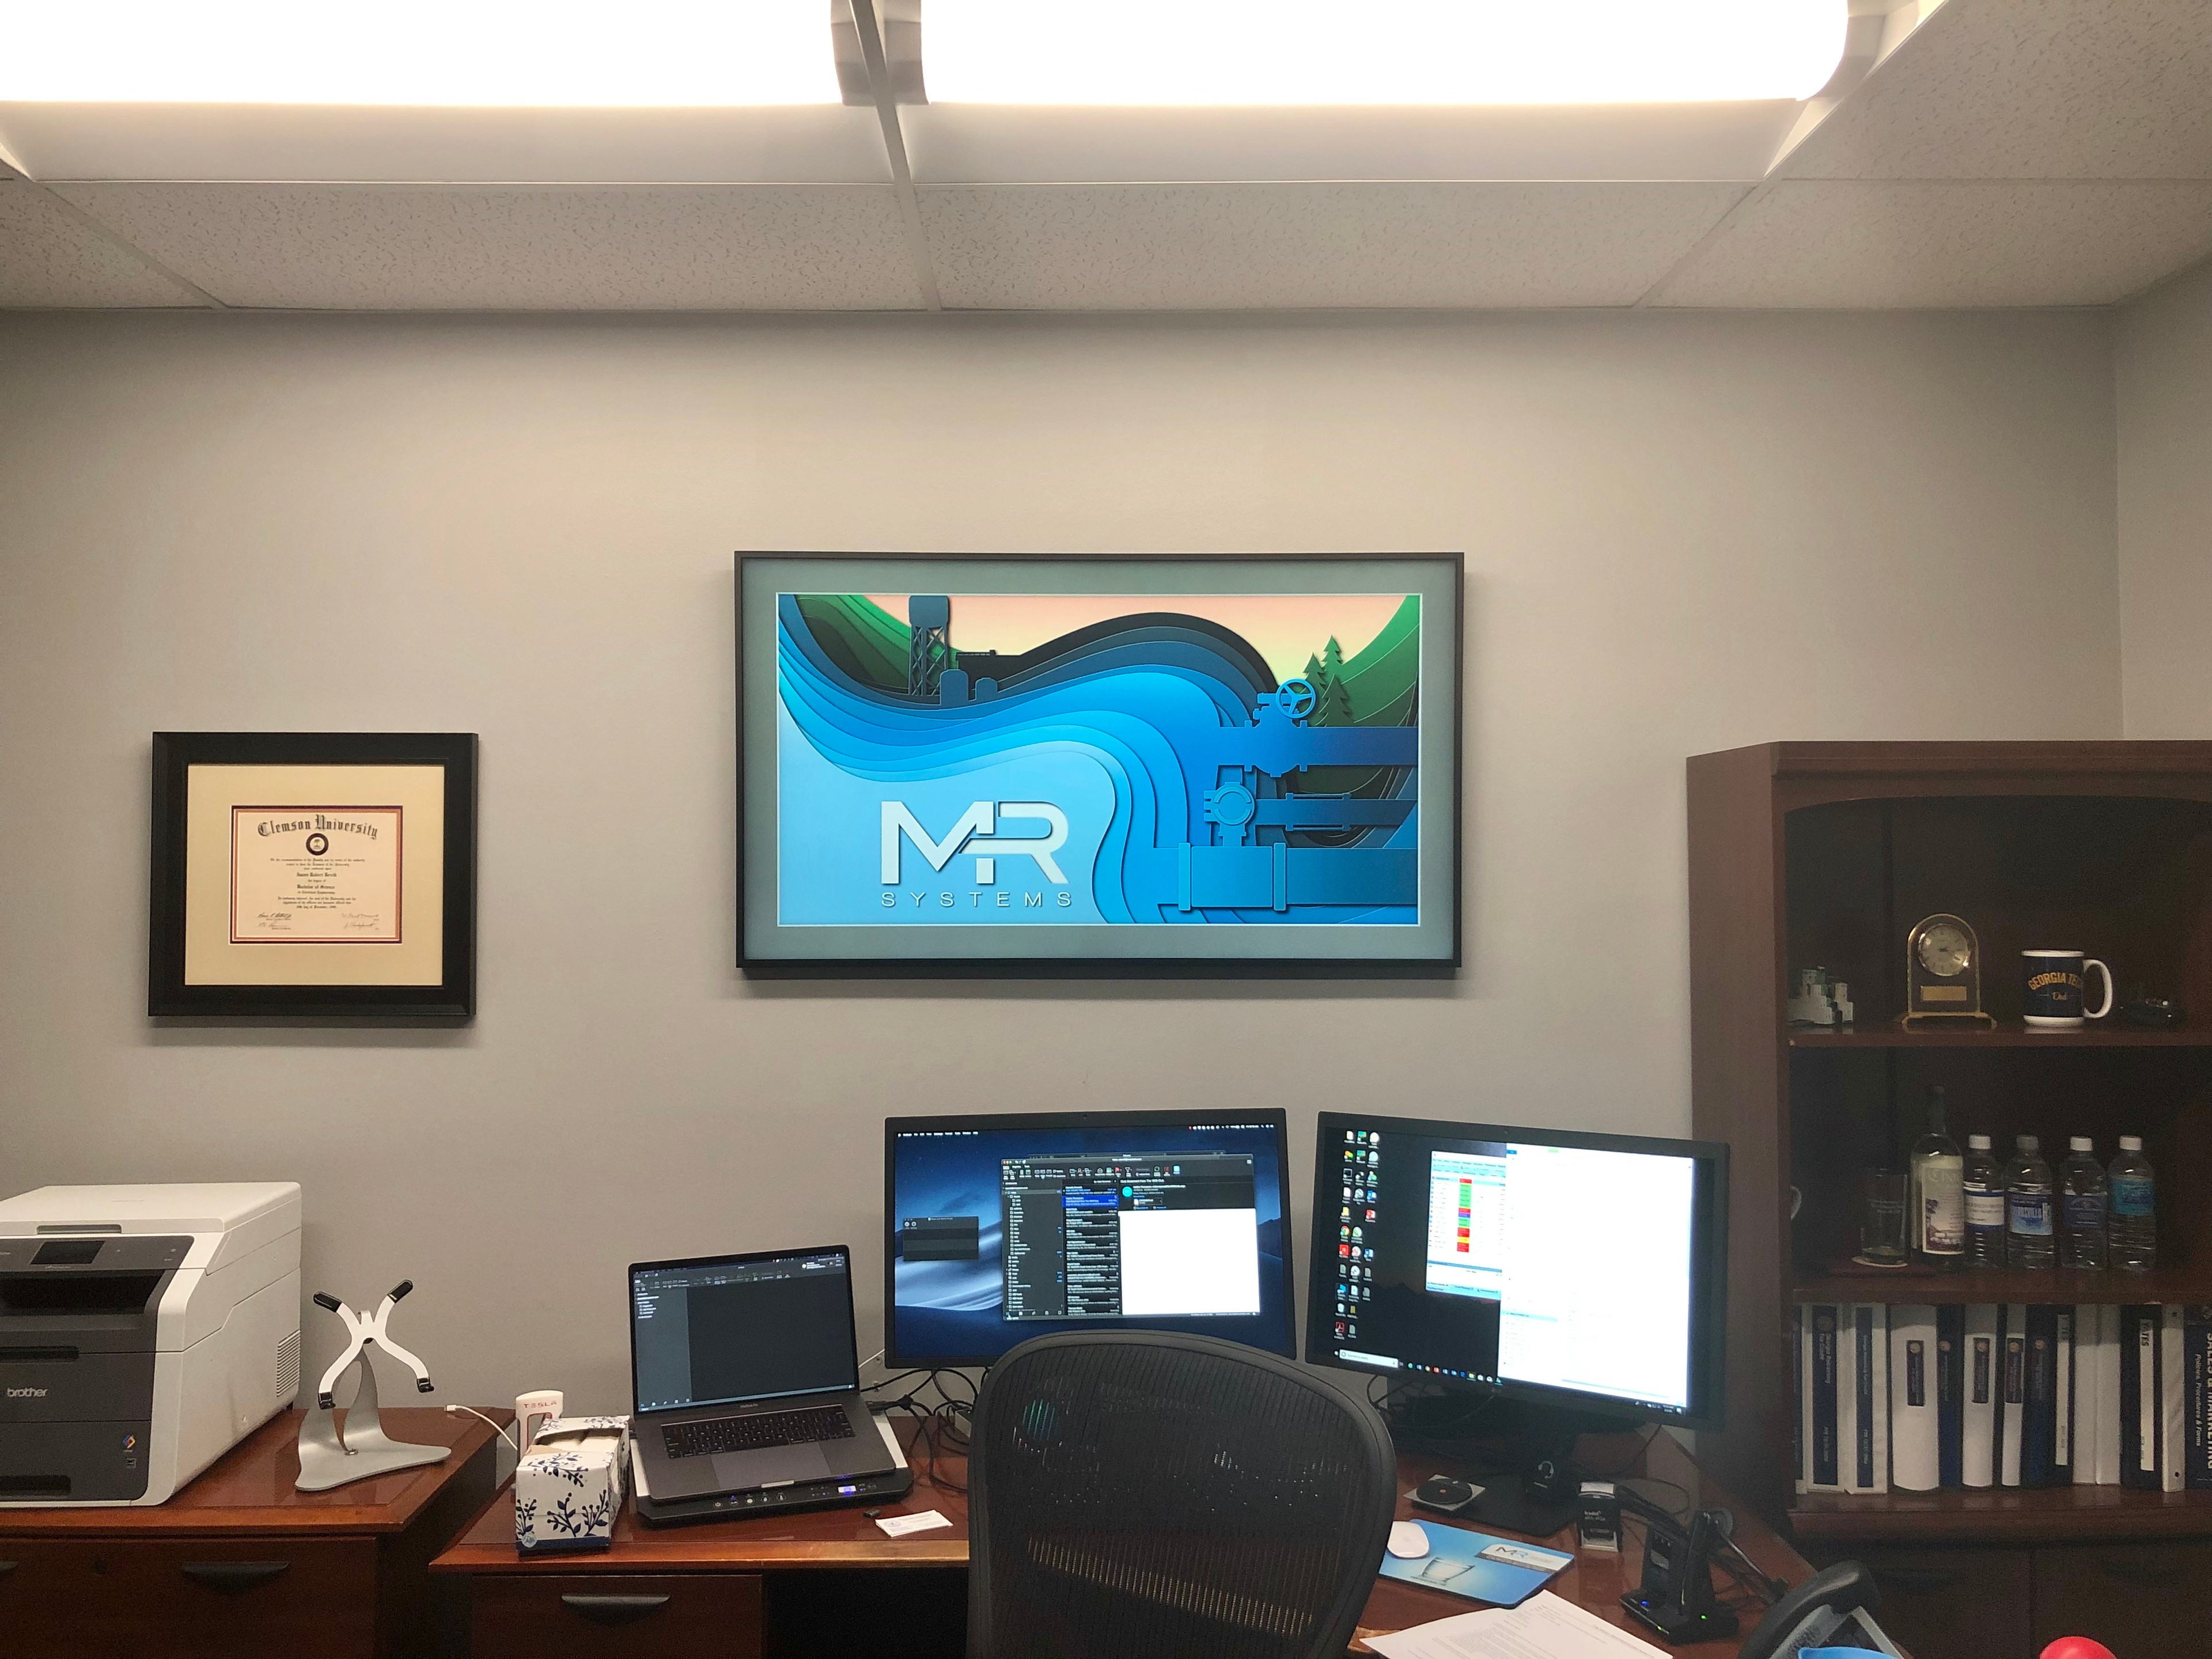 The president of the company liked the initial concept so much he put it on the digital picture frame in his office. How's that for an endorsement?